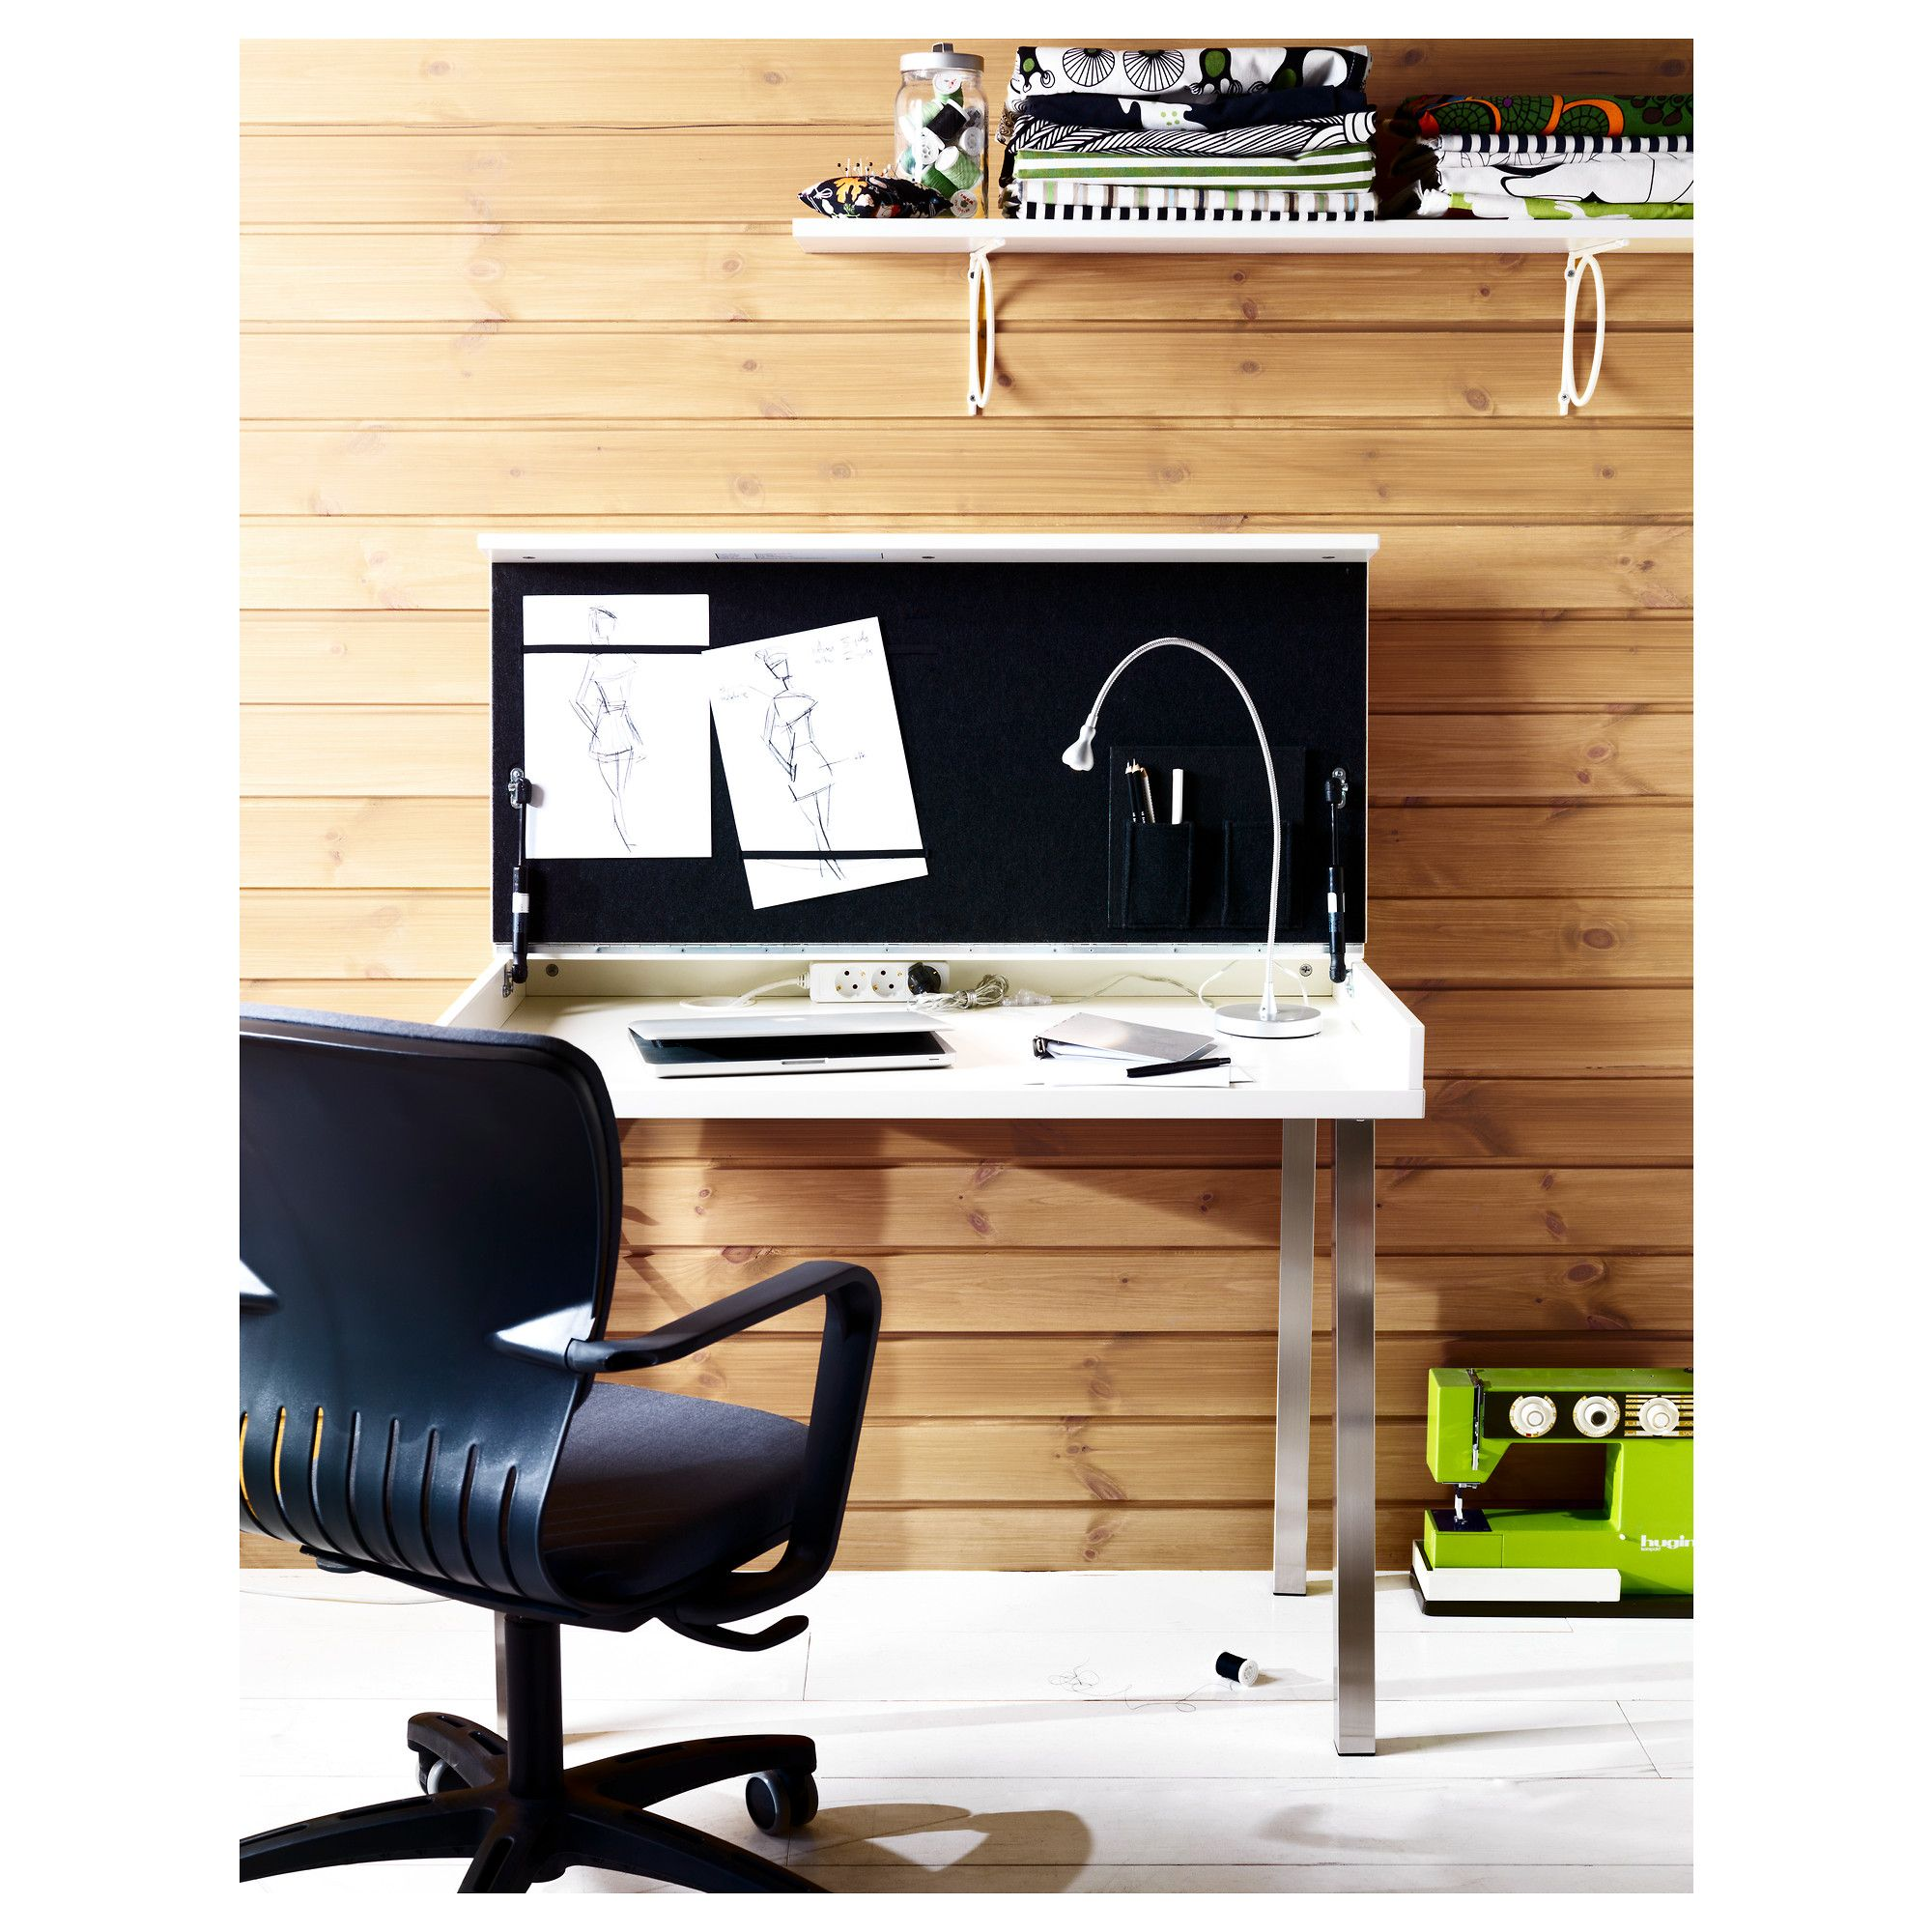 Vika Veine Desk By Ikea Nicely Combining Worke And Table A Cluttered Is Easily Hidden From Sight Your Thoughts